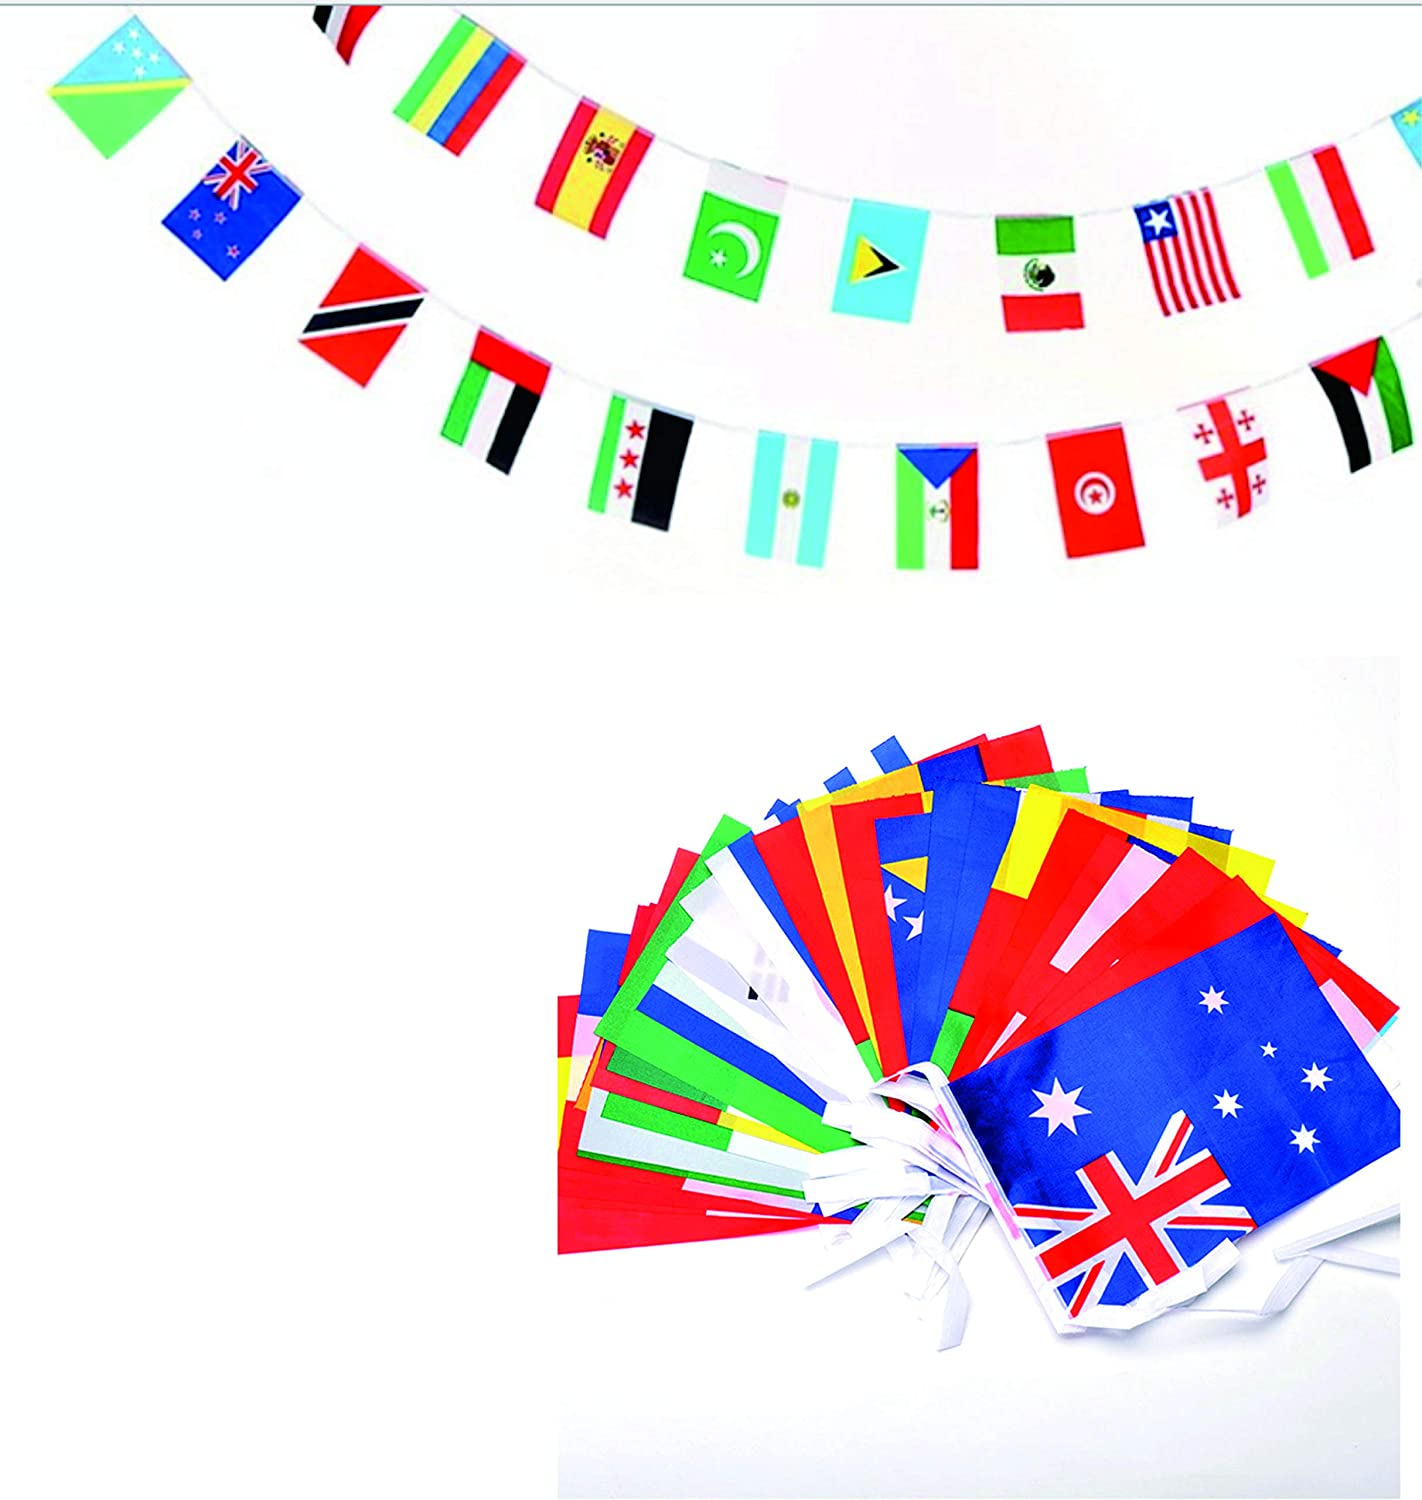 XCFH International Flags, 82 Feet 8.2'' x 5.5'' World Flags, 100 Countries Olympic Flags Pennant Banner for Bar, Party Decorations, Sports Clubs, Grand Opening, Festival Events Celebration…